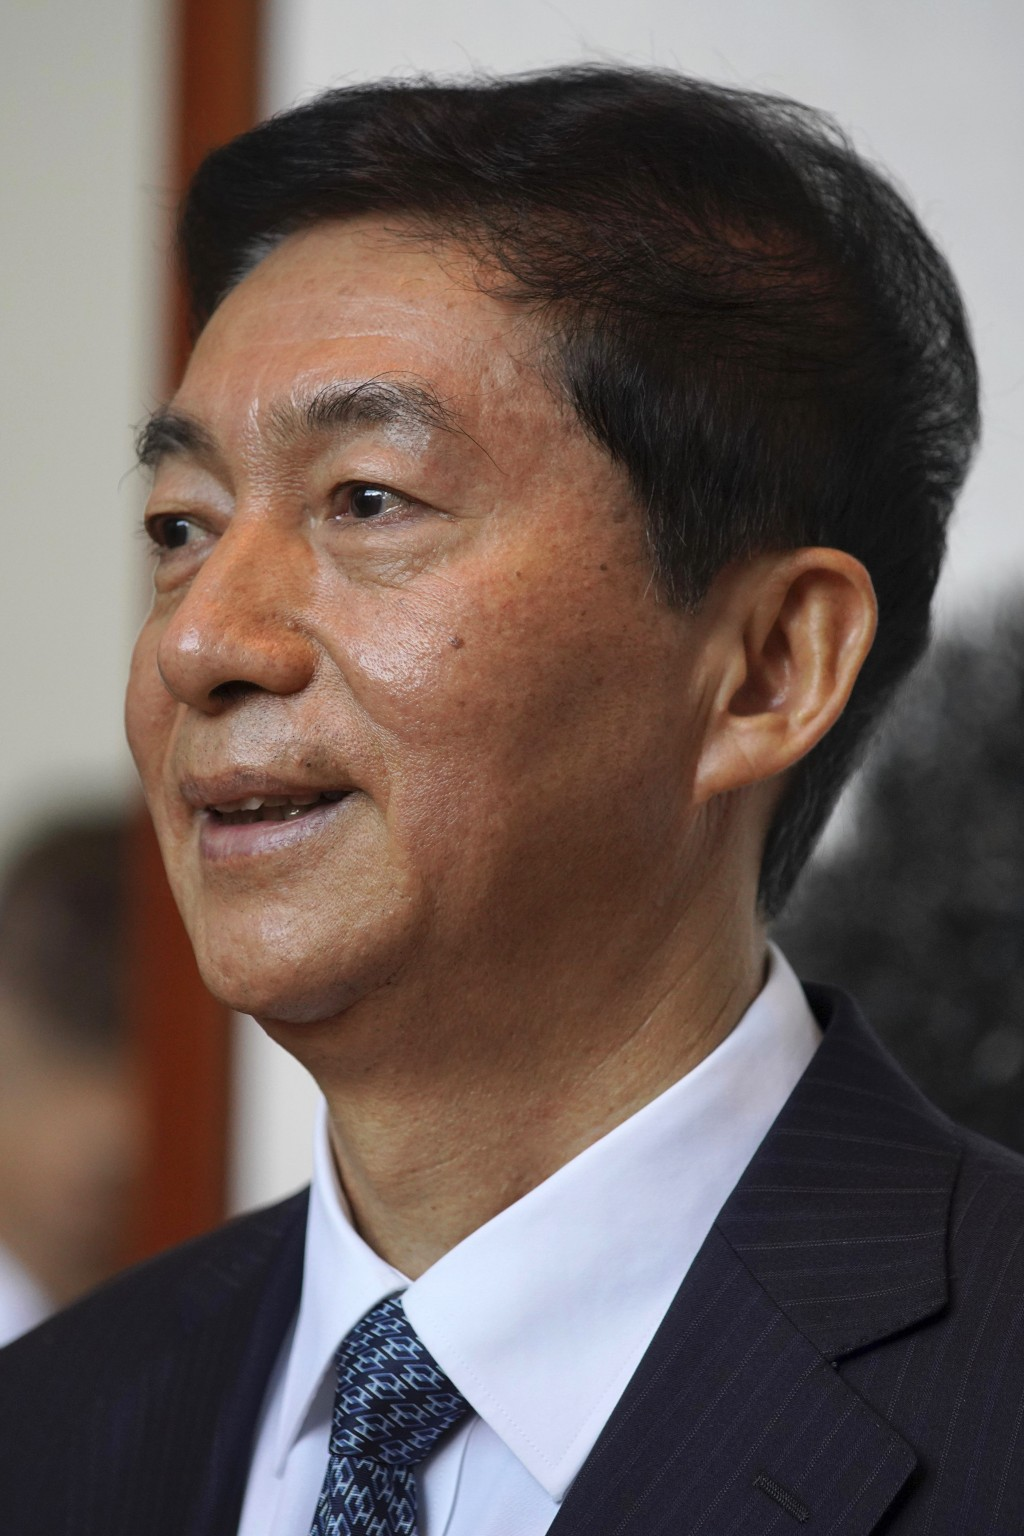 Newly appointed head of China's liaison office in Hong Kong, Luo Huining, speaks during a media briefing at the China's liaison office in Hong Kong, M...